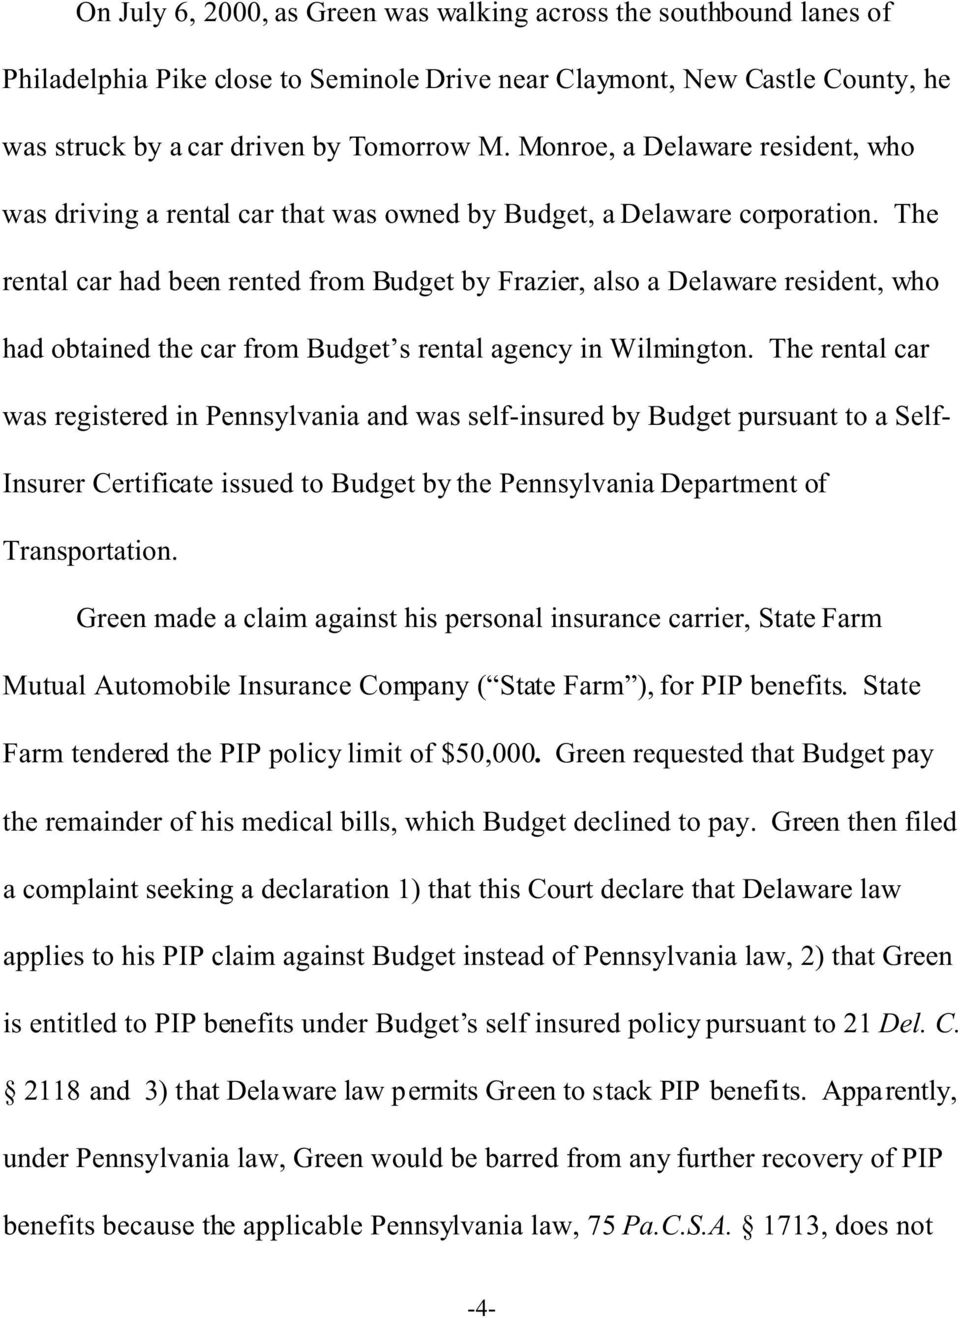 The rental car had been rented from Budget by Frazier, also a Delaware resident, who had obtained the car from Budget s rental agency in Wilmington.